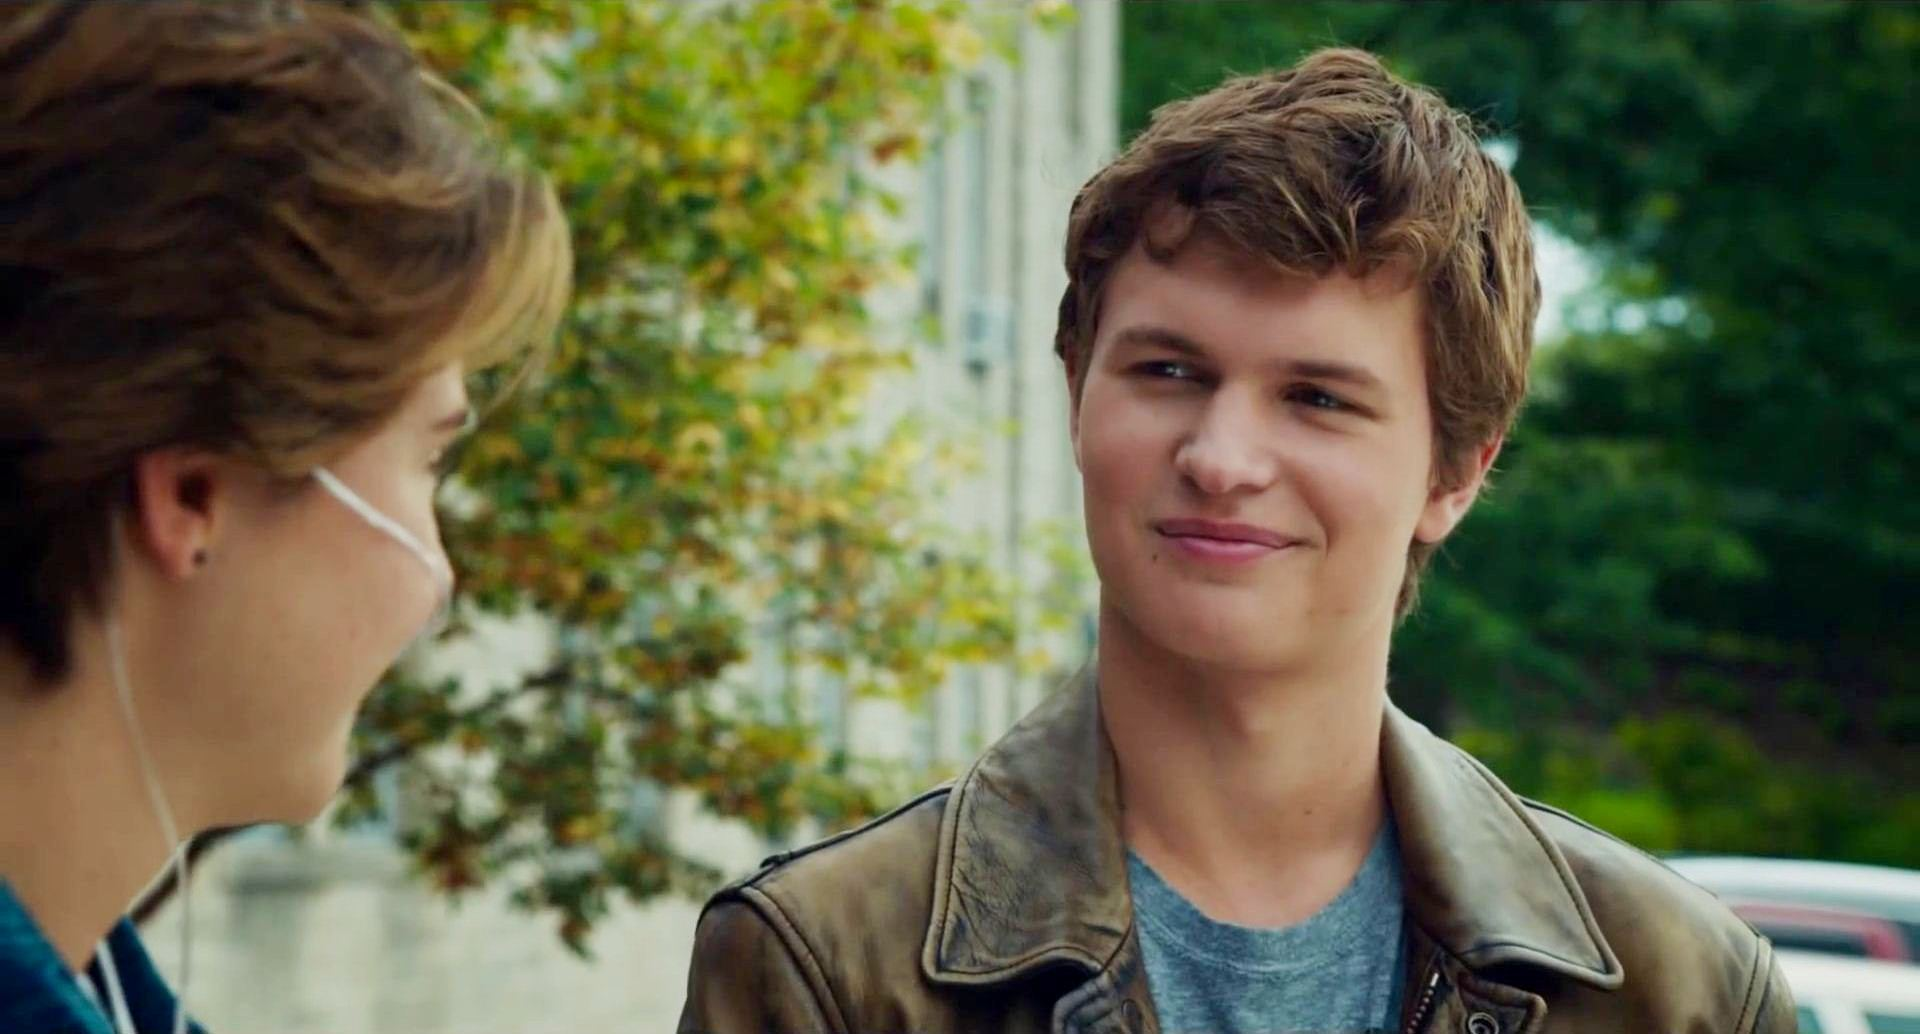 ansel-elgort-in-the-fault-in-our-stars-movie-14